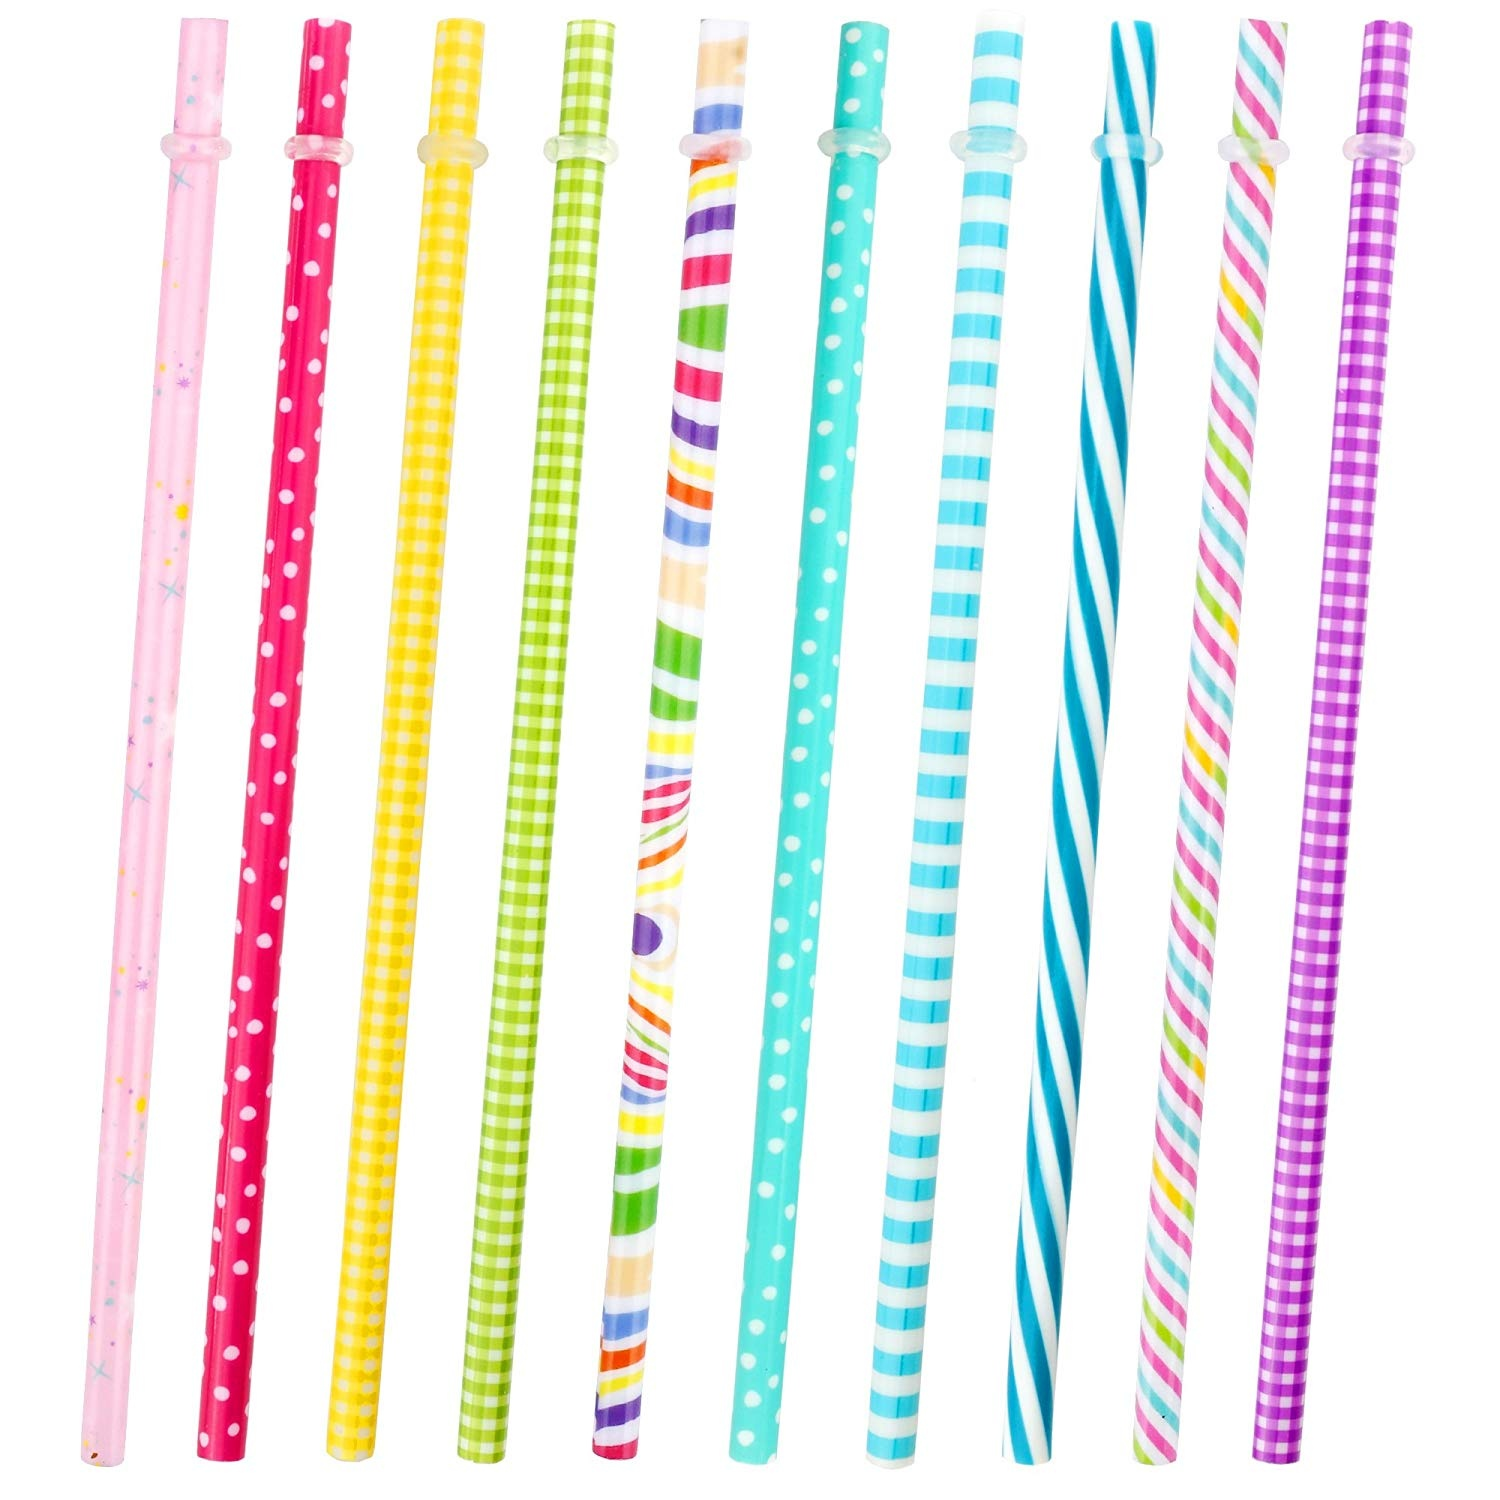 40 Pieces Reusable Straws,BPA-Free,23cm Colourful Hard Platic Stripe  Drinking Straw for Mason Jar Tumbler,Family or Party Use,Cleaning Brush  Included